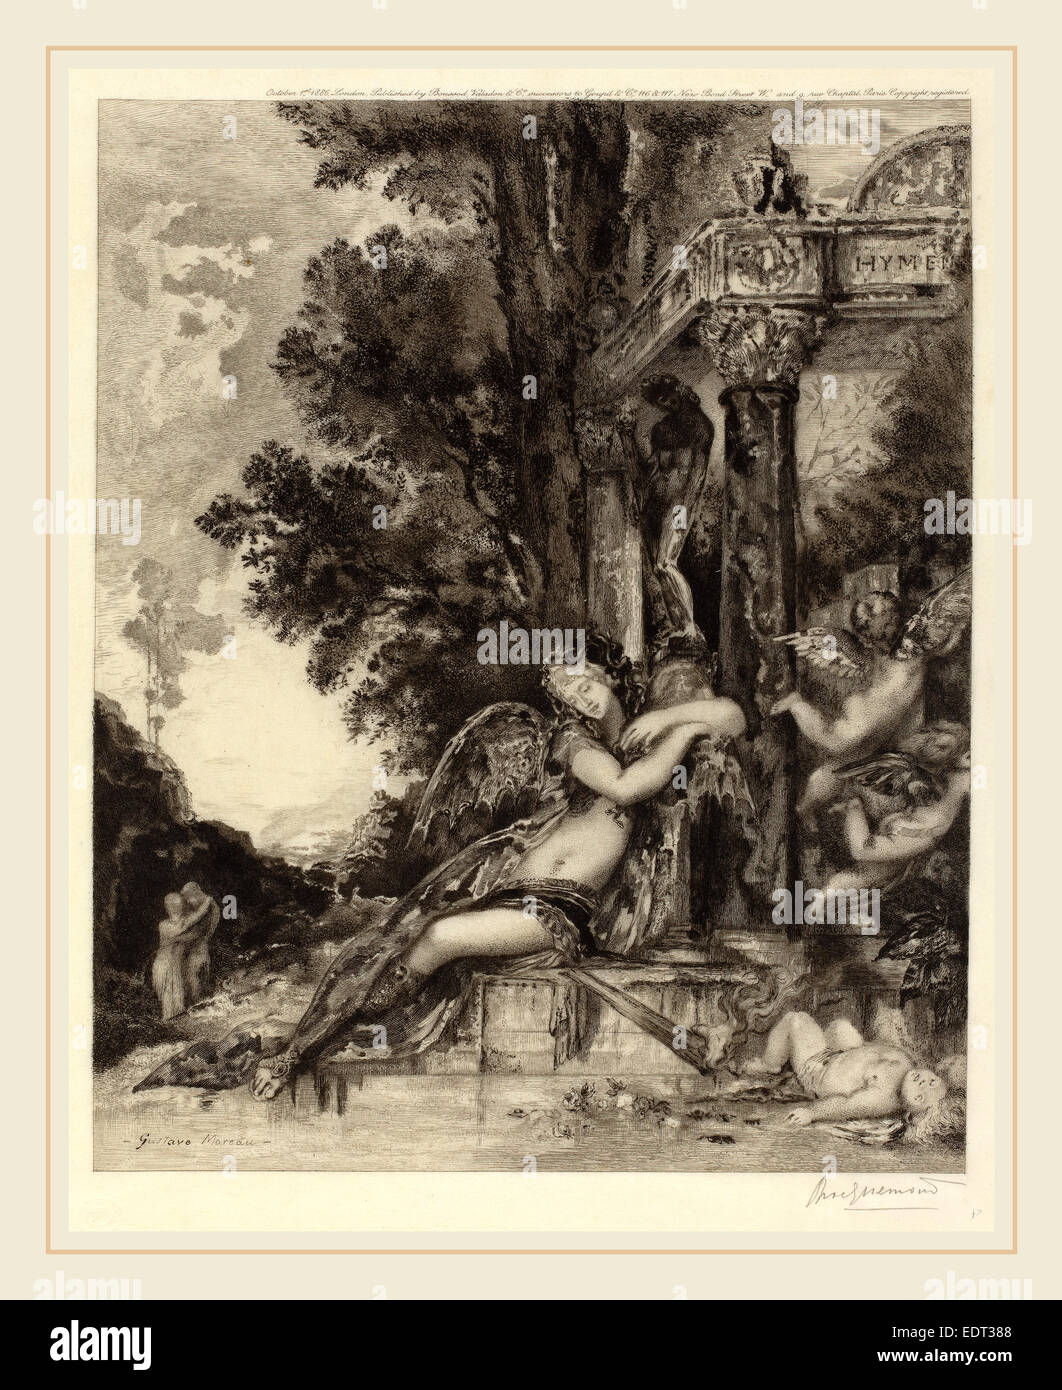 Félix Bracquemond, La dionade, French, 1833-1914, etching - Stock Image